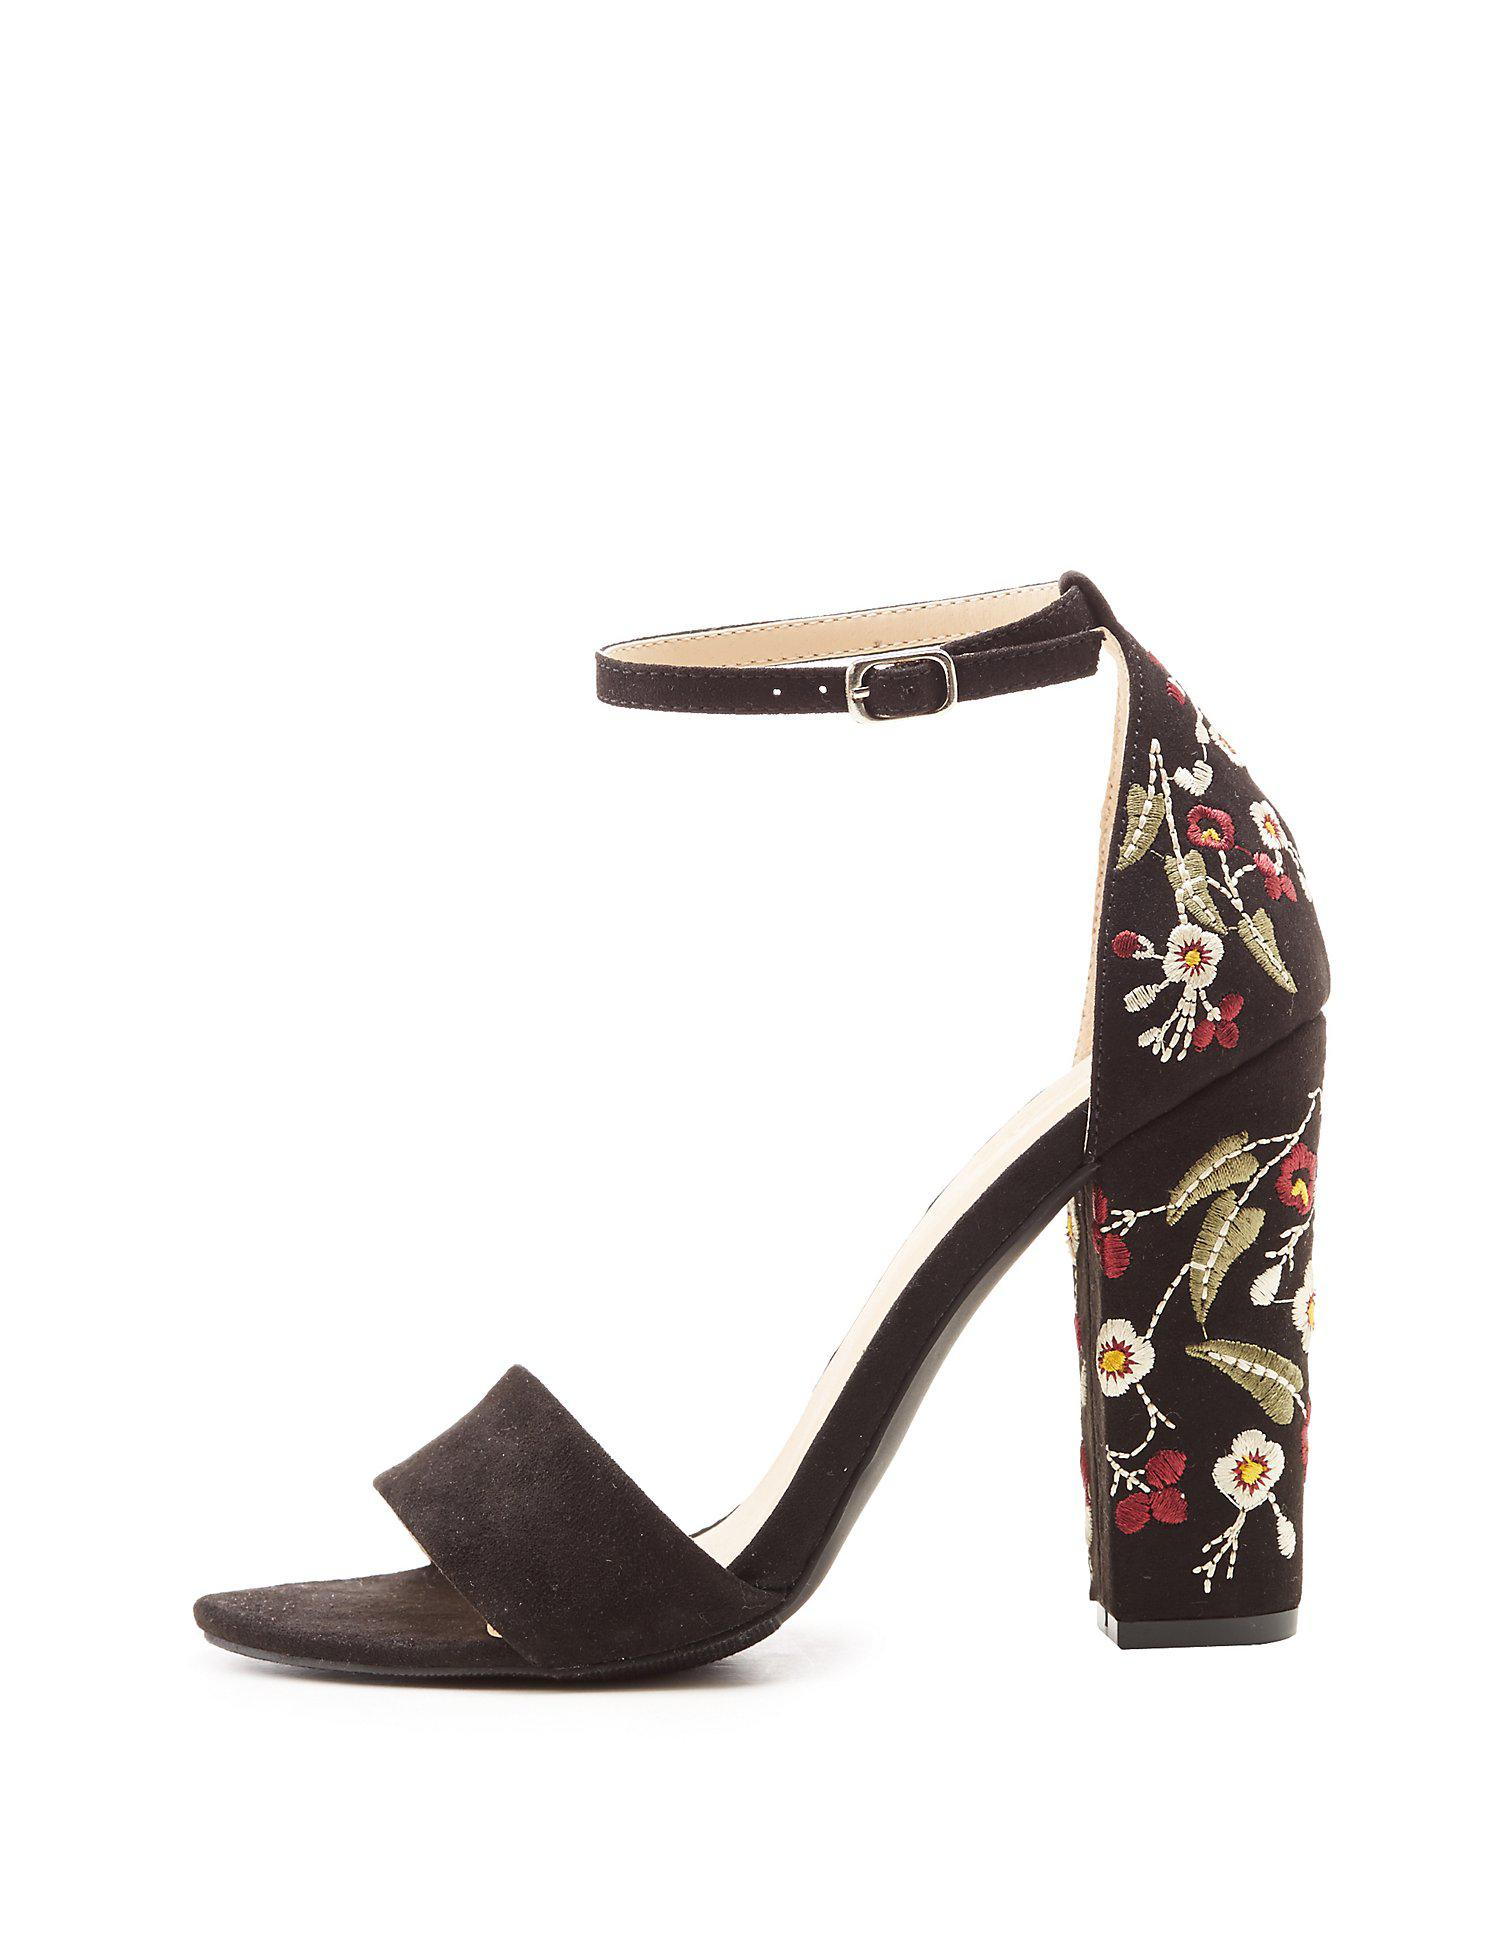 5160d3ee250 Lyst - Charlotte Russe Floral Embroidered Two-piece Sandals in Black ...